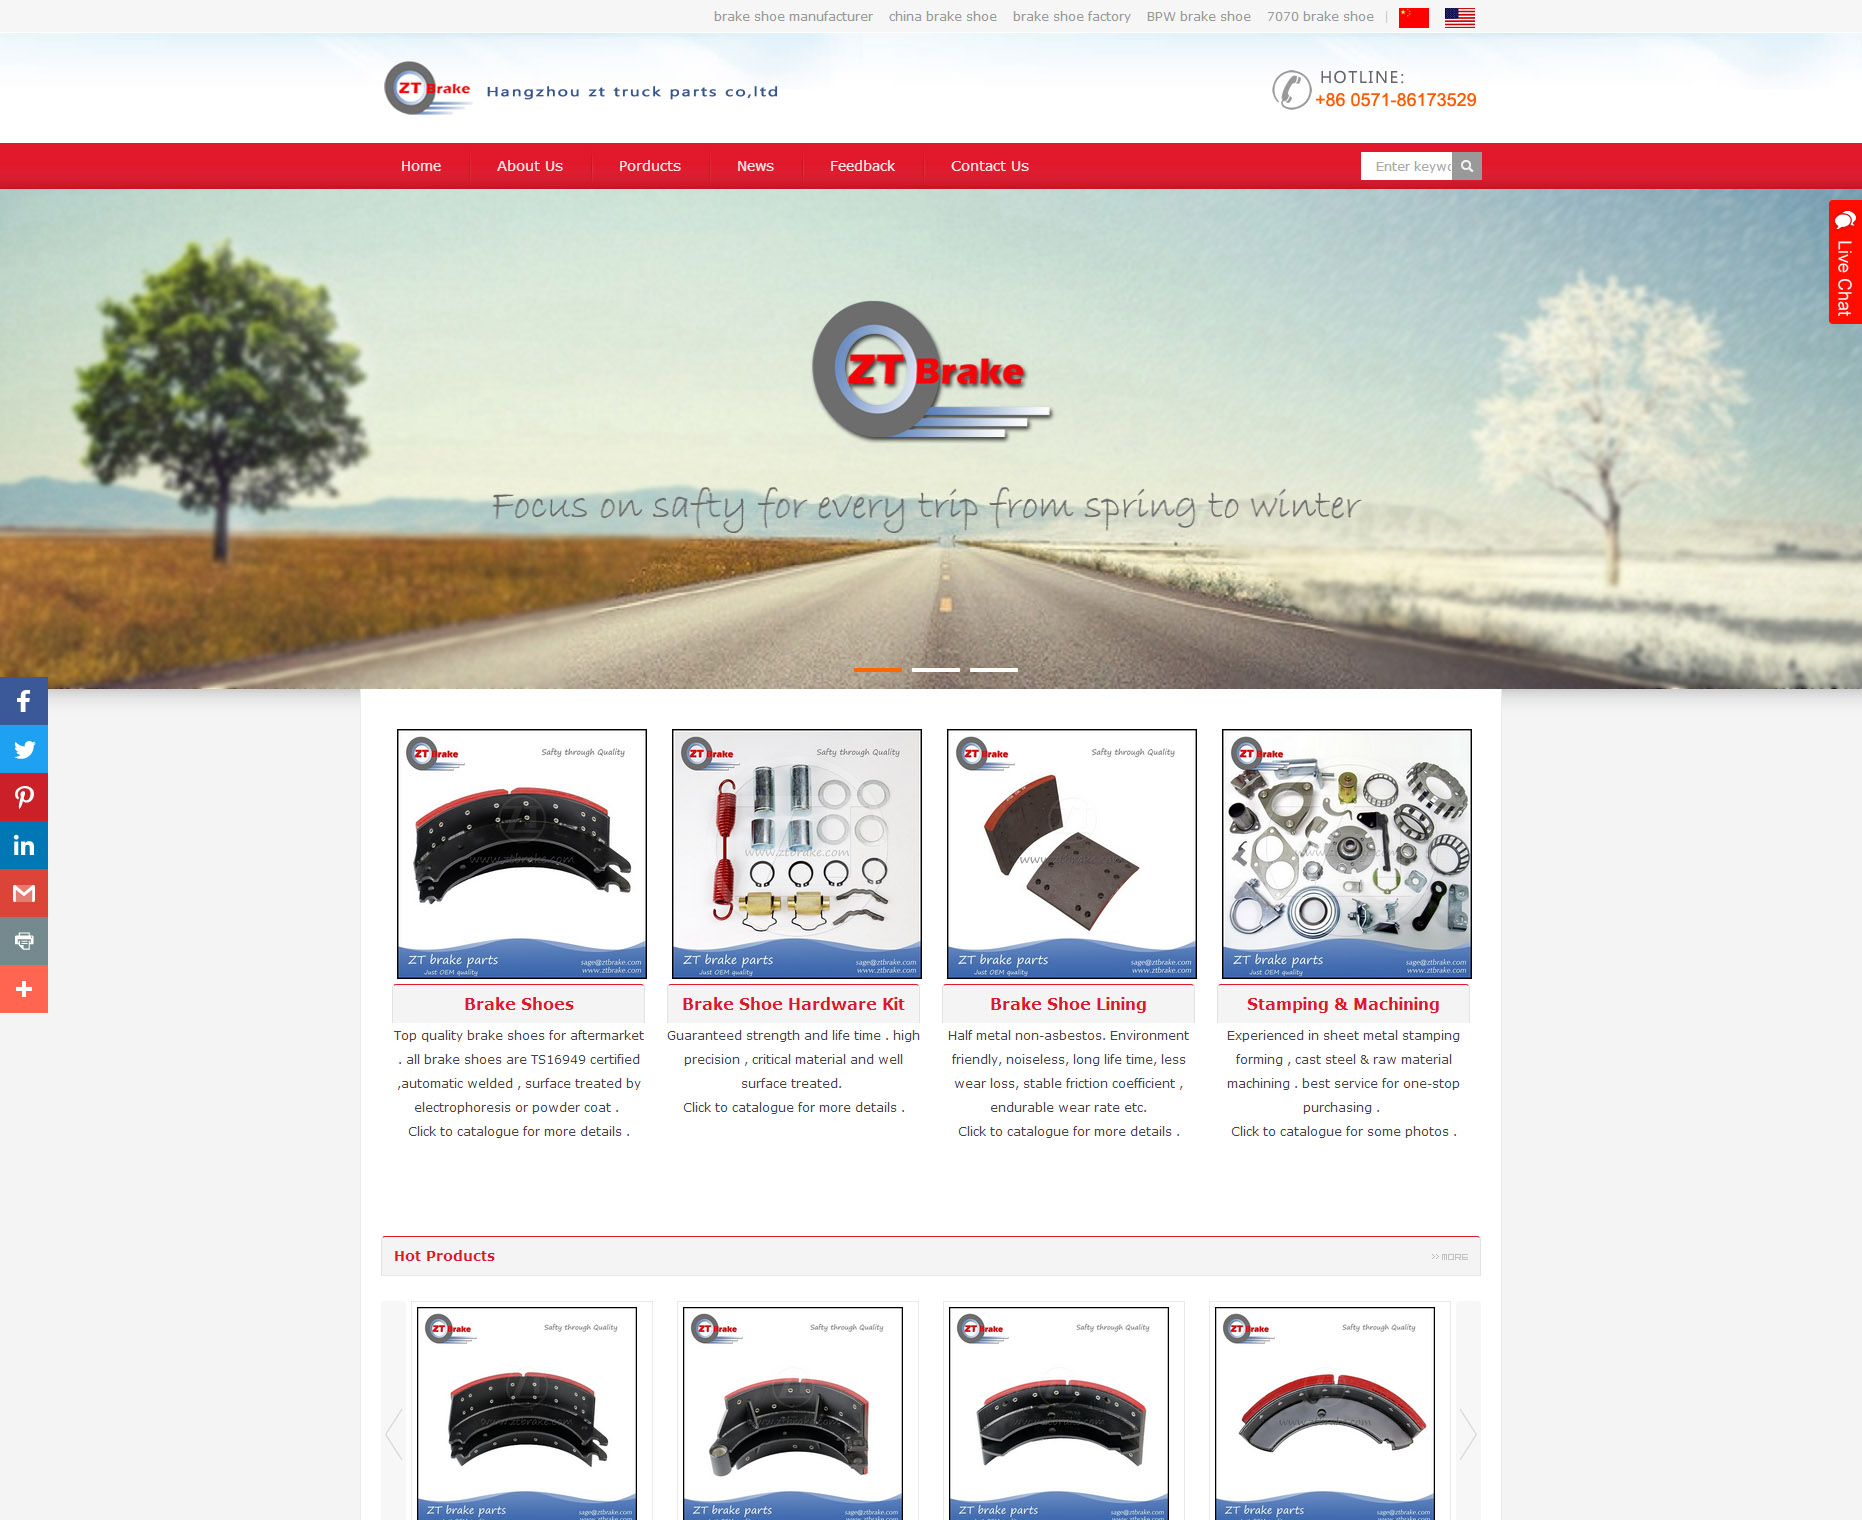 Hangzhou zt truck parts co,ltd